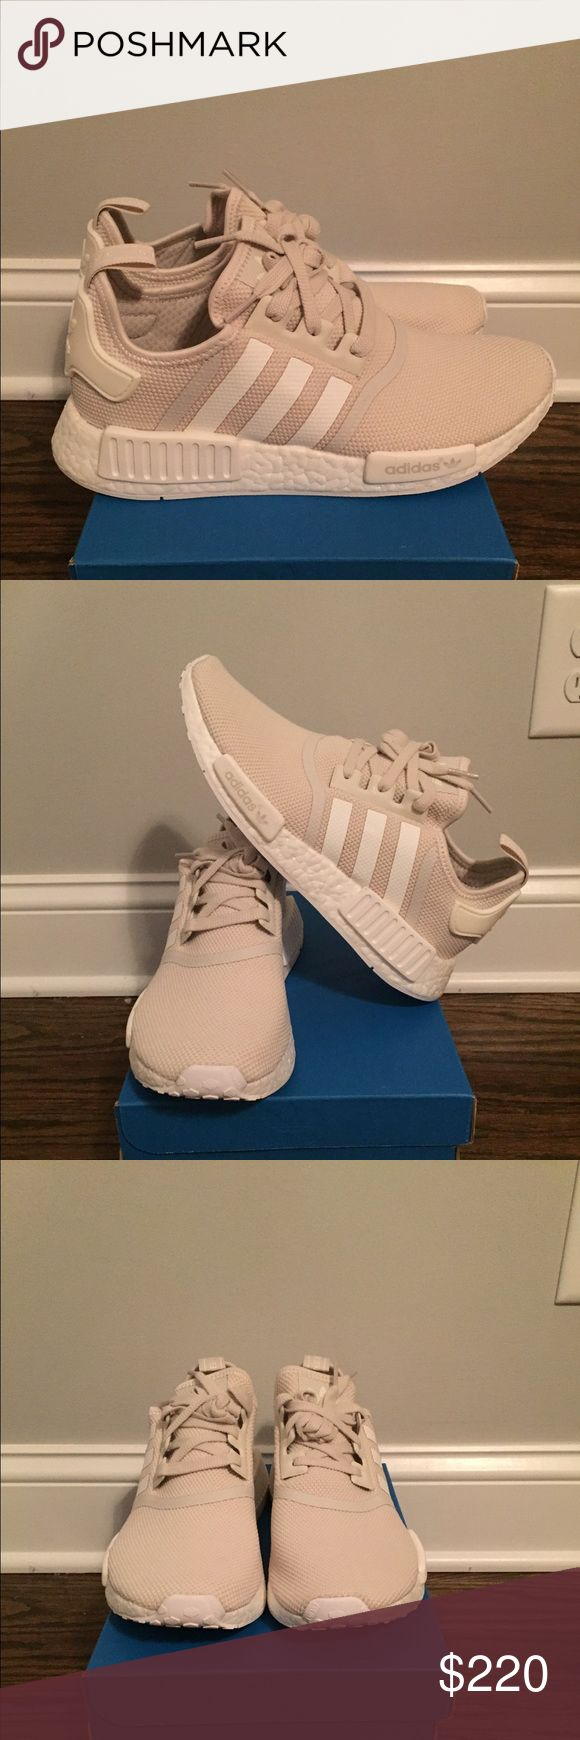 NIB Adidas NMD R1 Talc Cream Women Sz 8.5 9.5 This listing is for Brand New Adidas NMD R1 in Talc Cream colorway (S76007) in size 8.5 or 9.5 These are sold out everywhere. US Women Size 8.5 and 9.5 available SKU: S76007 100% Brand New, Unworn, and Authentic!!! Adidas Shoes Sneakers